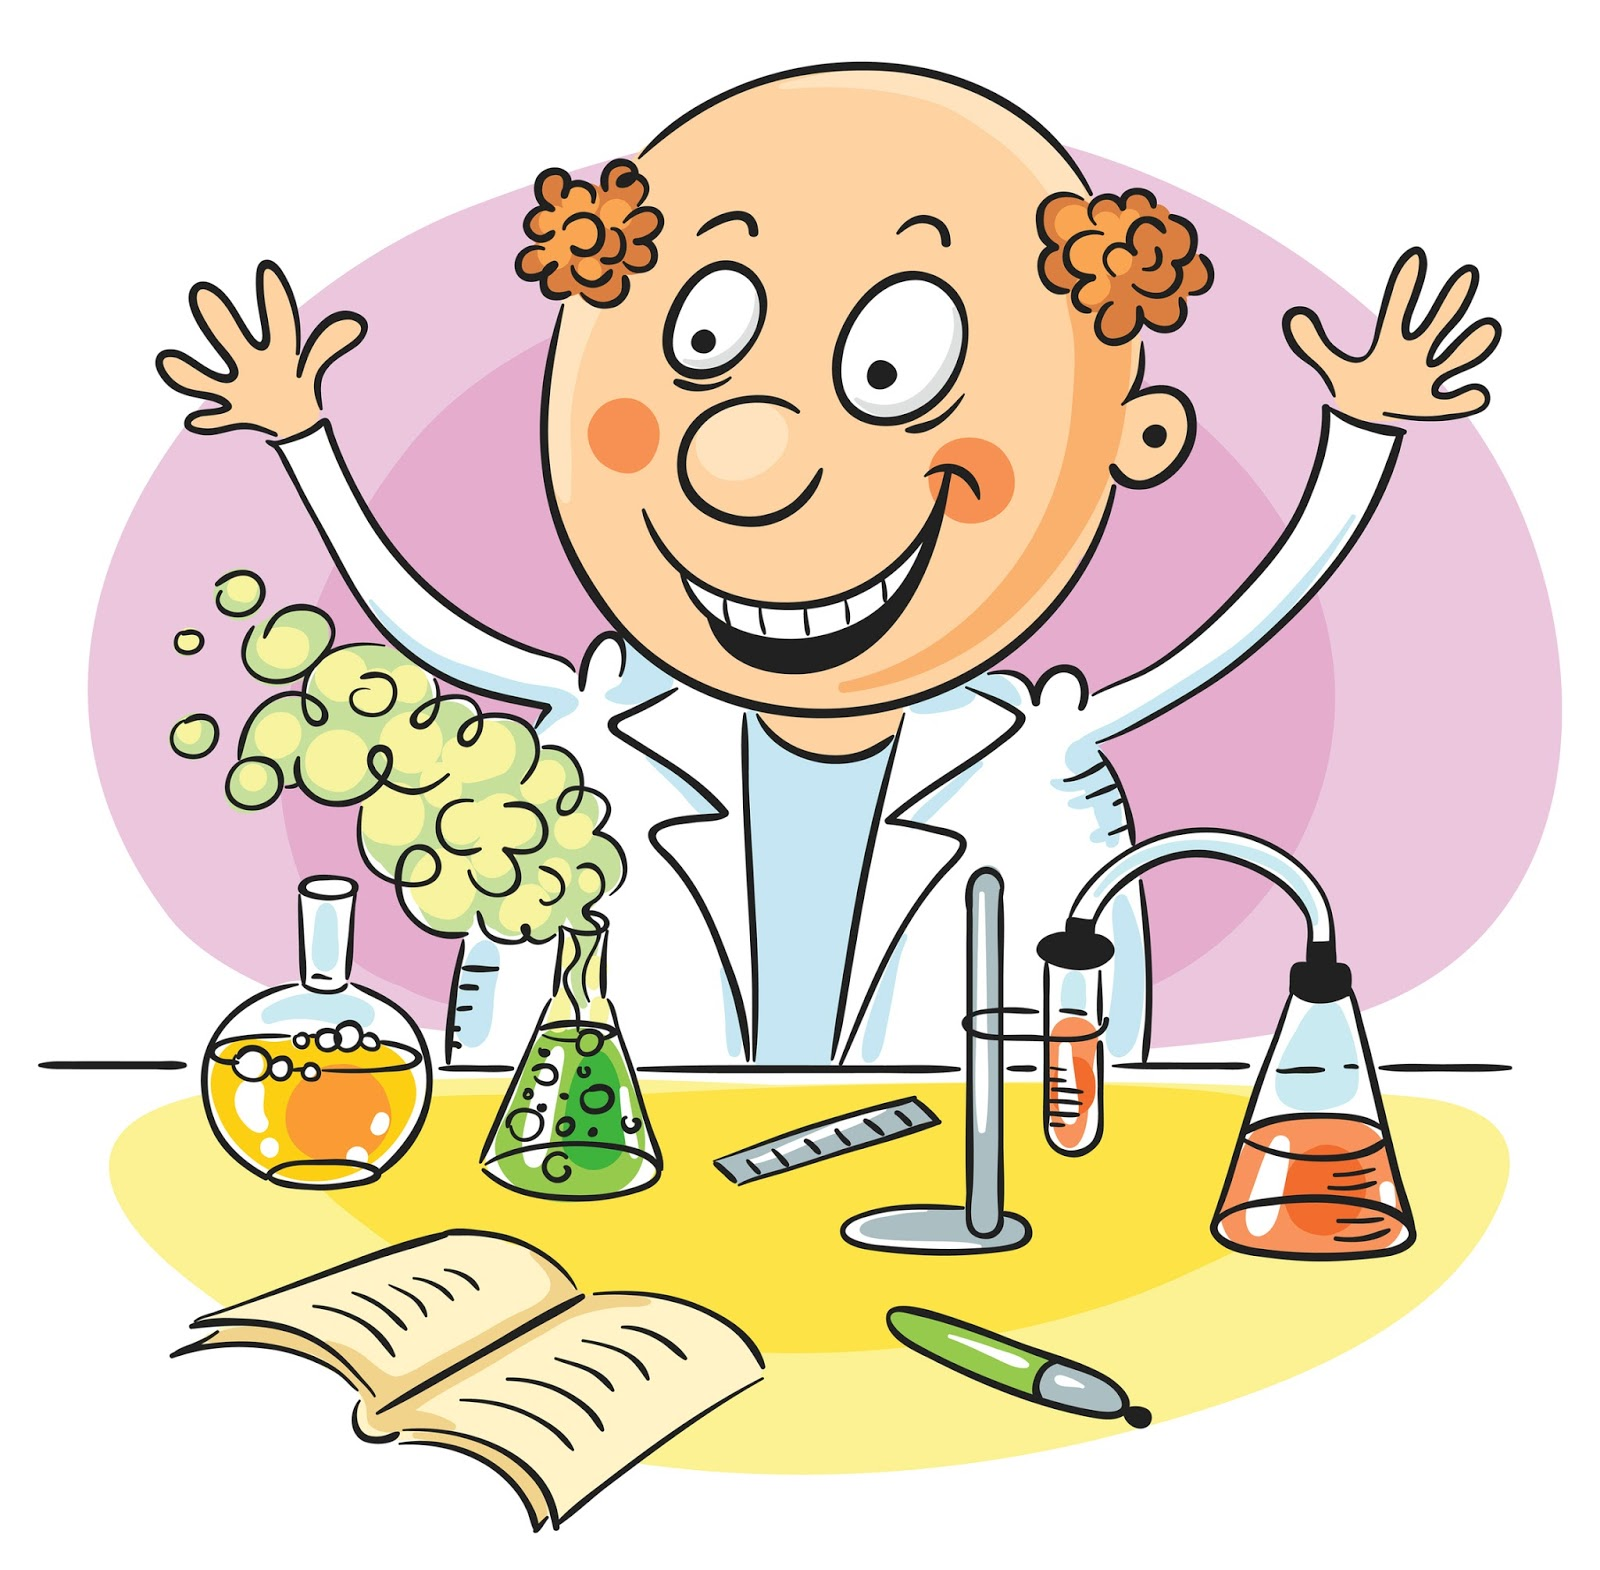 experiment scientist science happy cartoon chemistry successful students vector animal motivating illustration doctor student lab royalty chemist chemical project professor